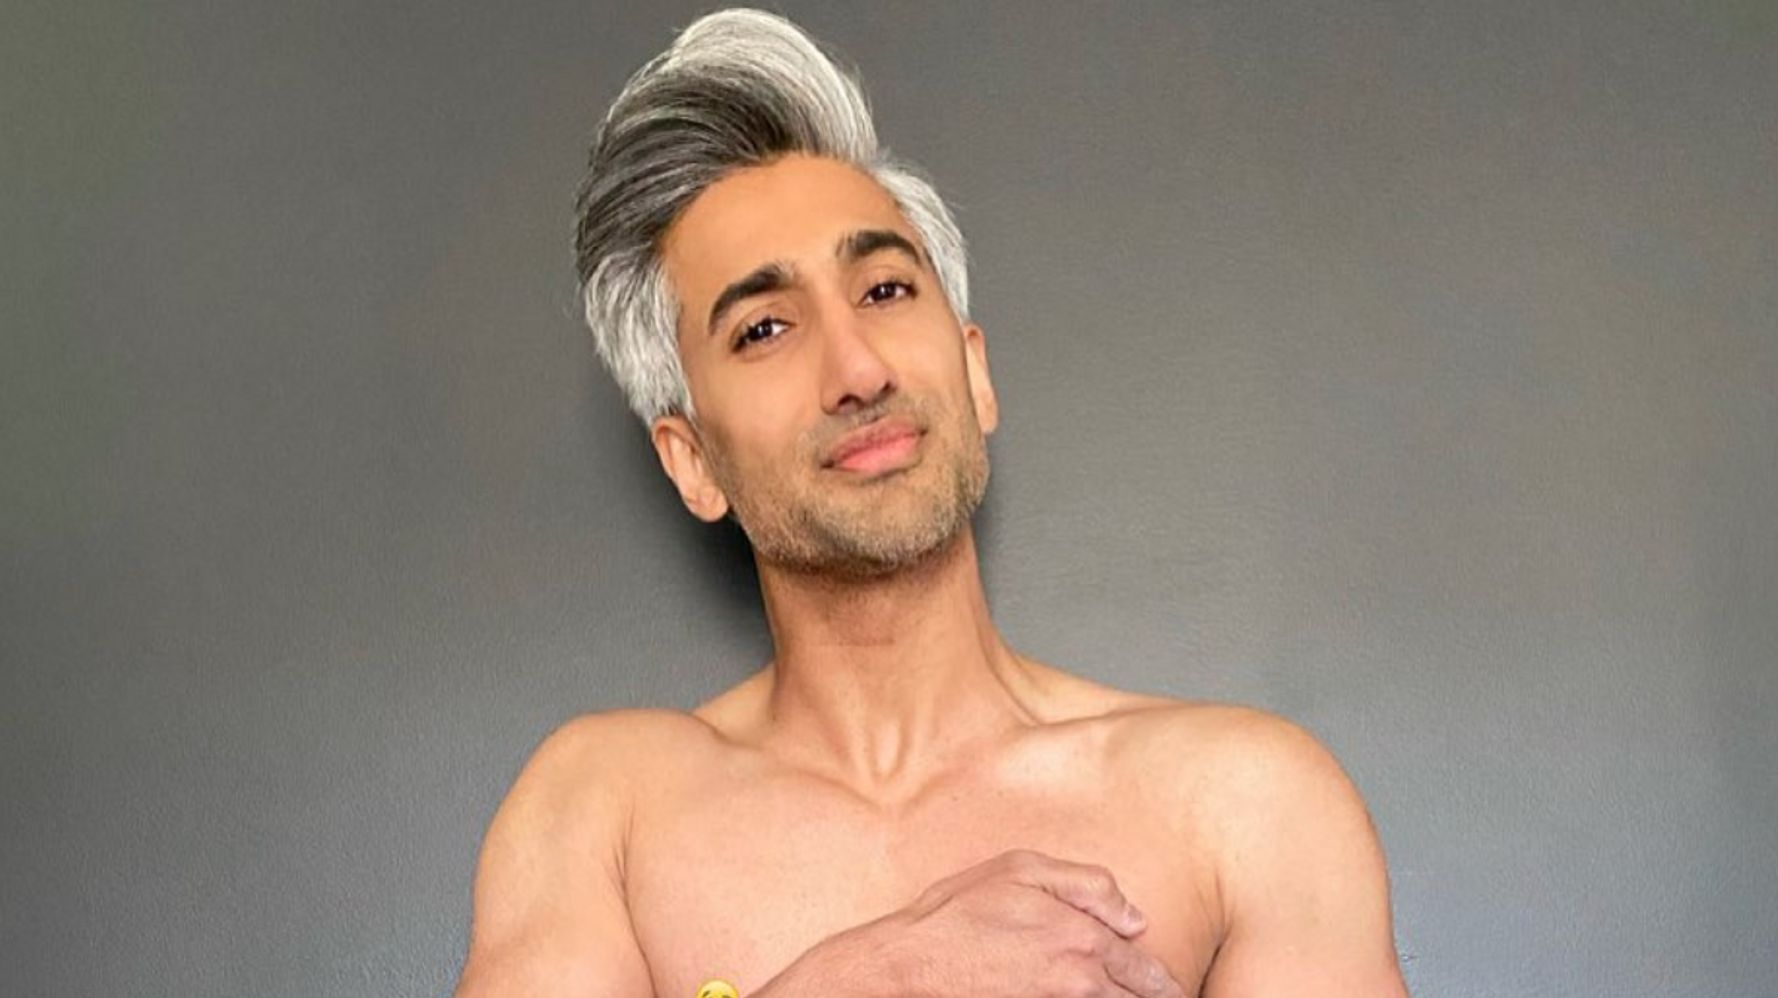 Tan France From Queer Eye Is Expecting A Baby Via Surrogate